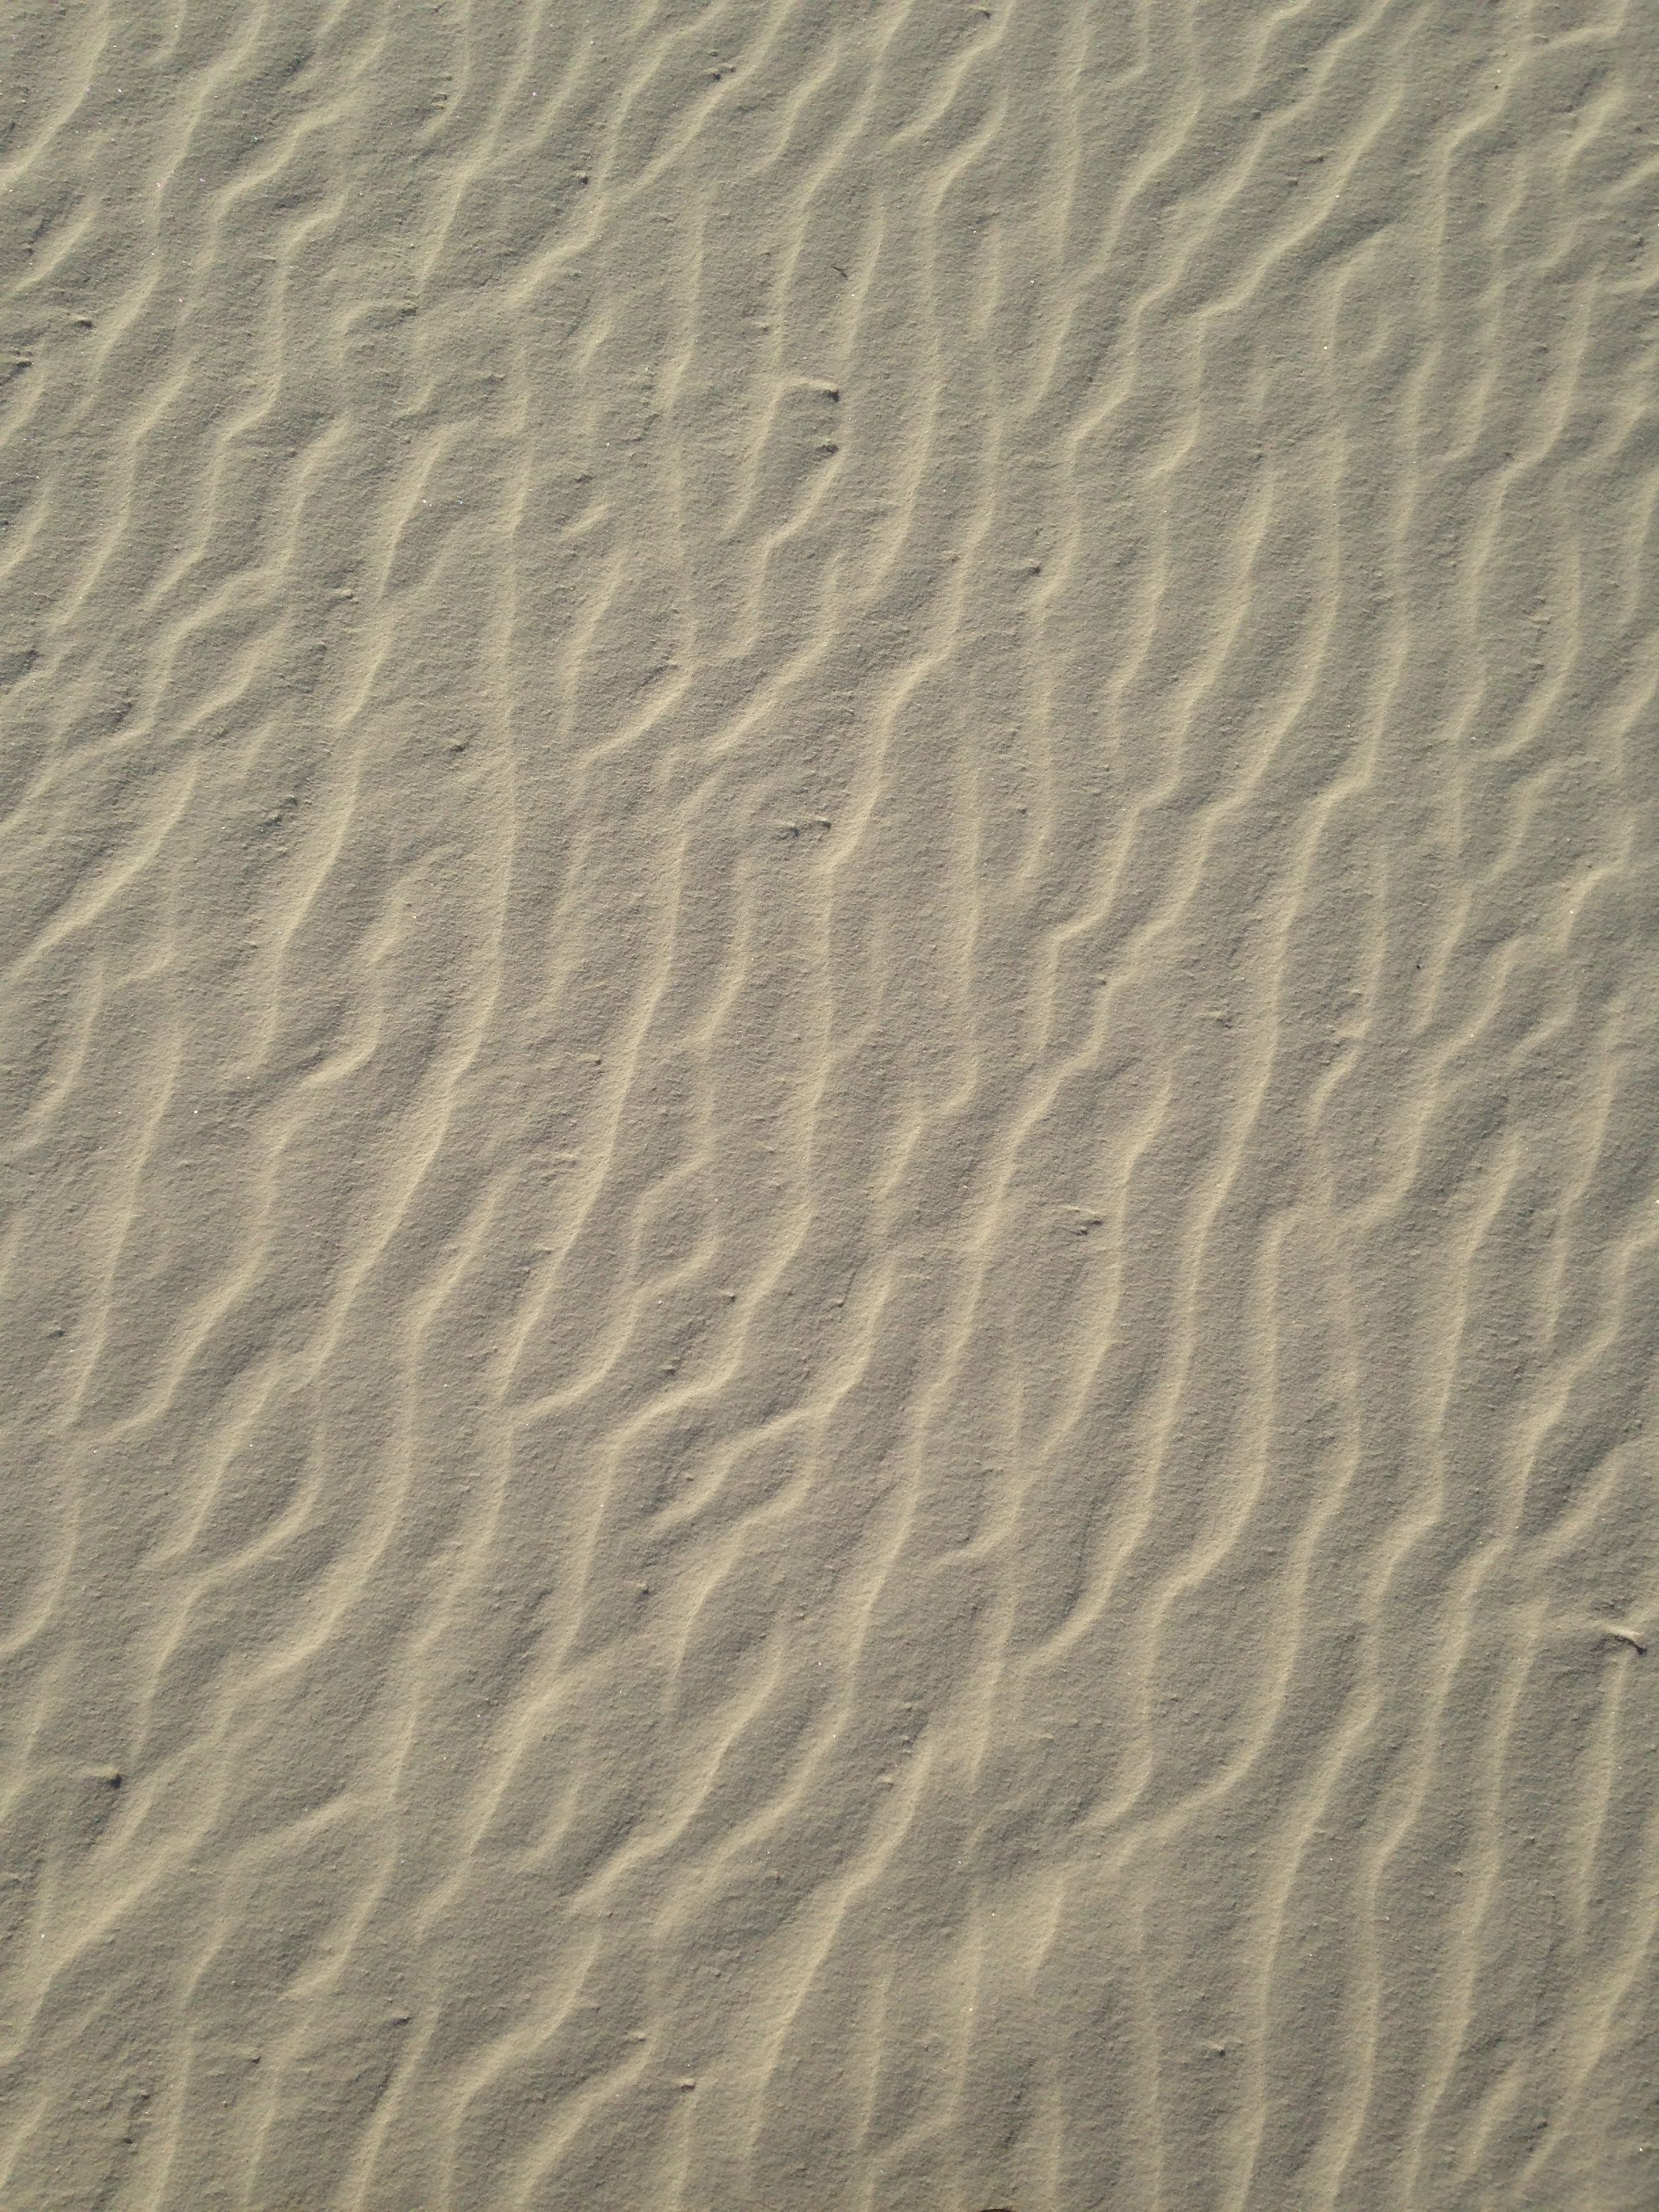 White sand in New Mexico